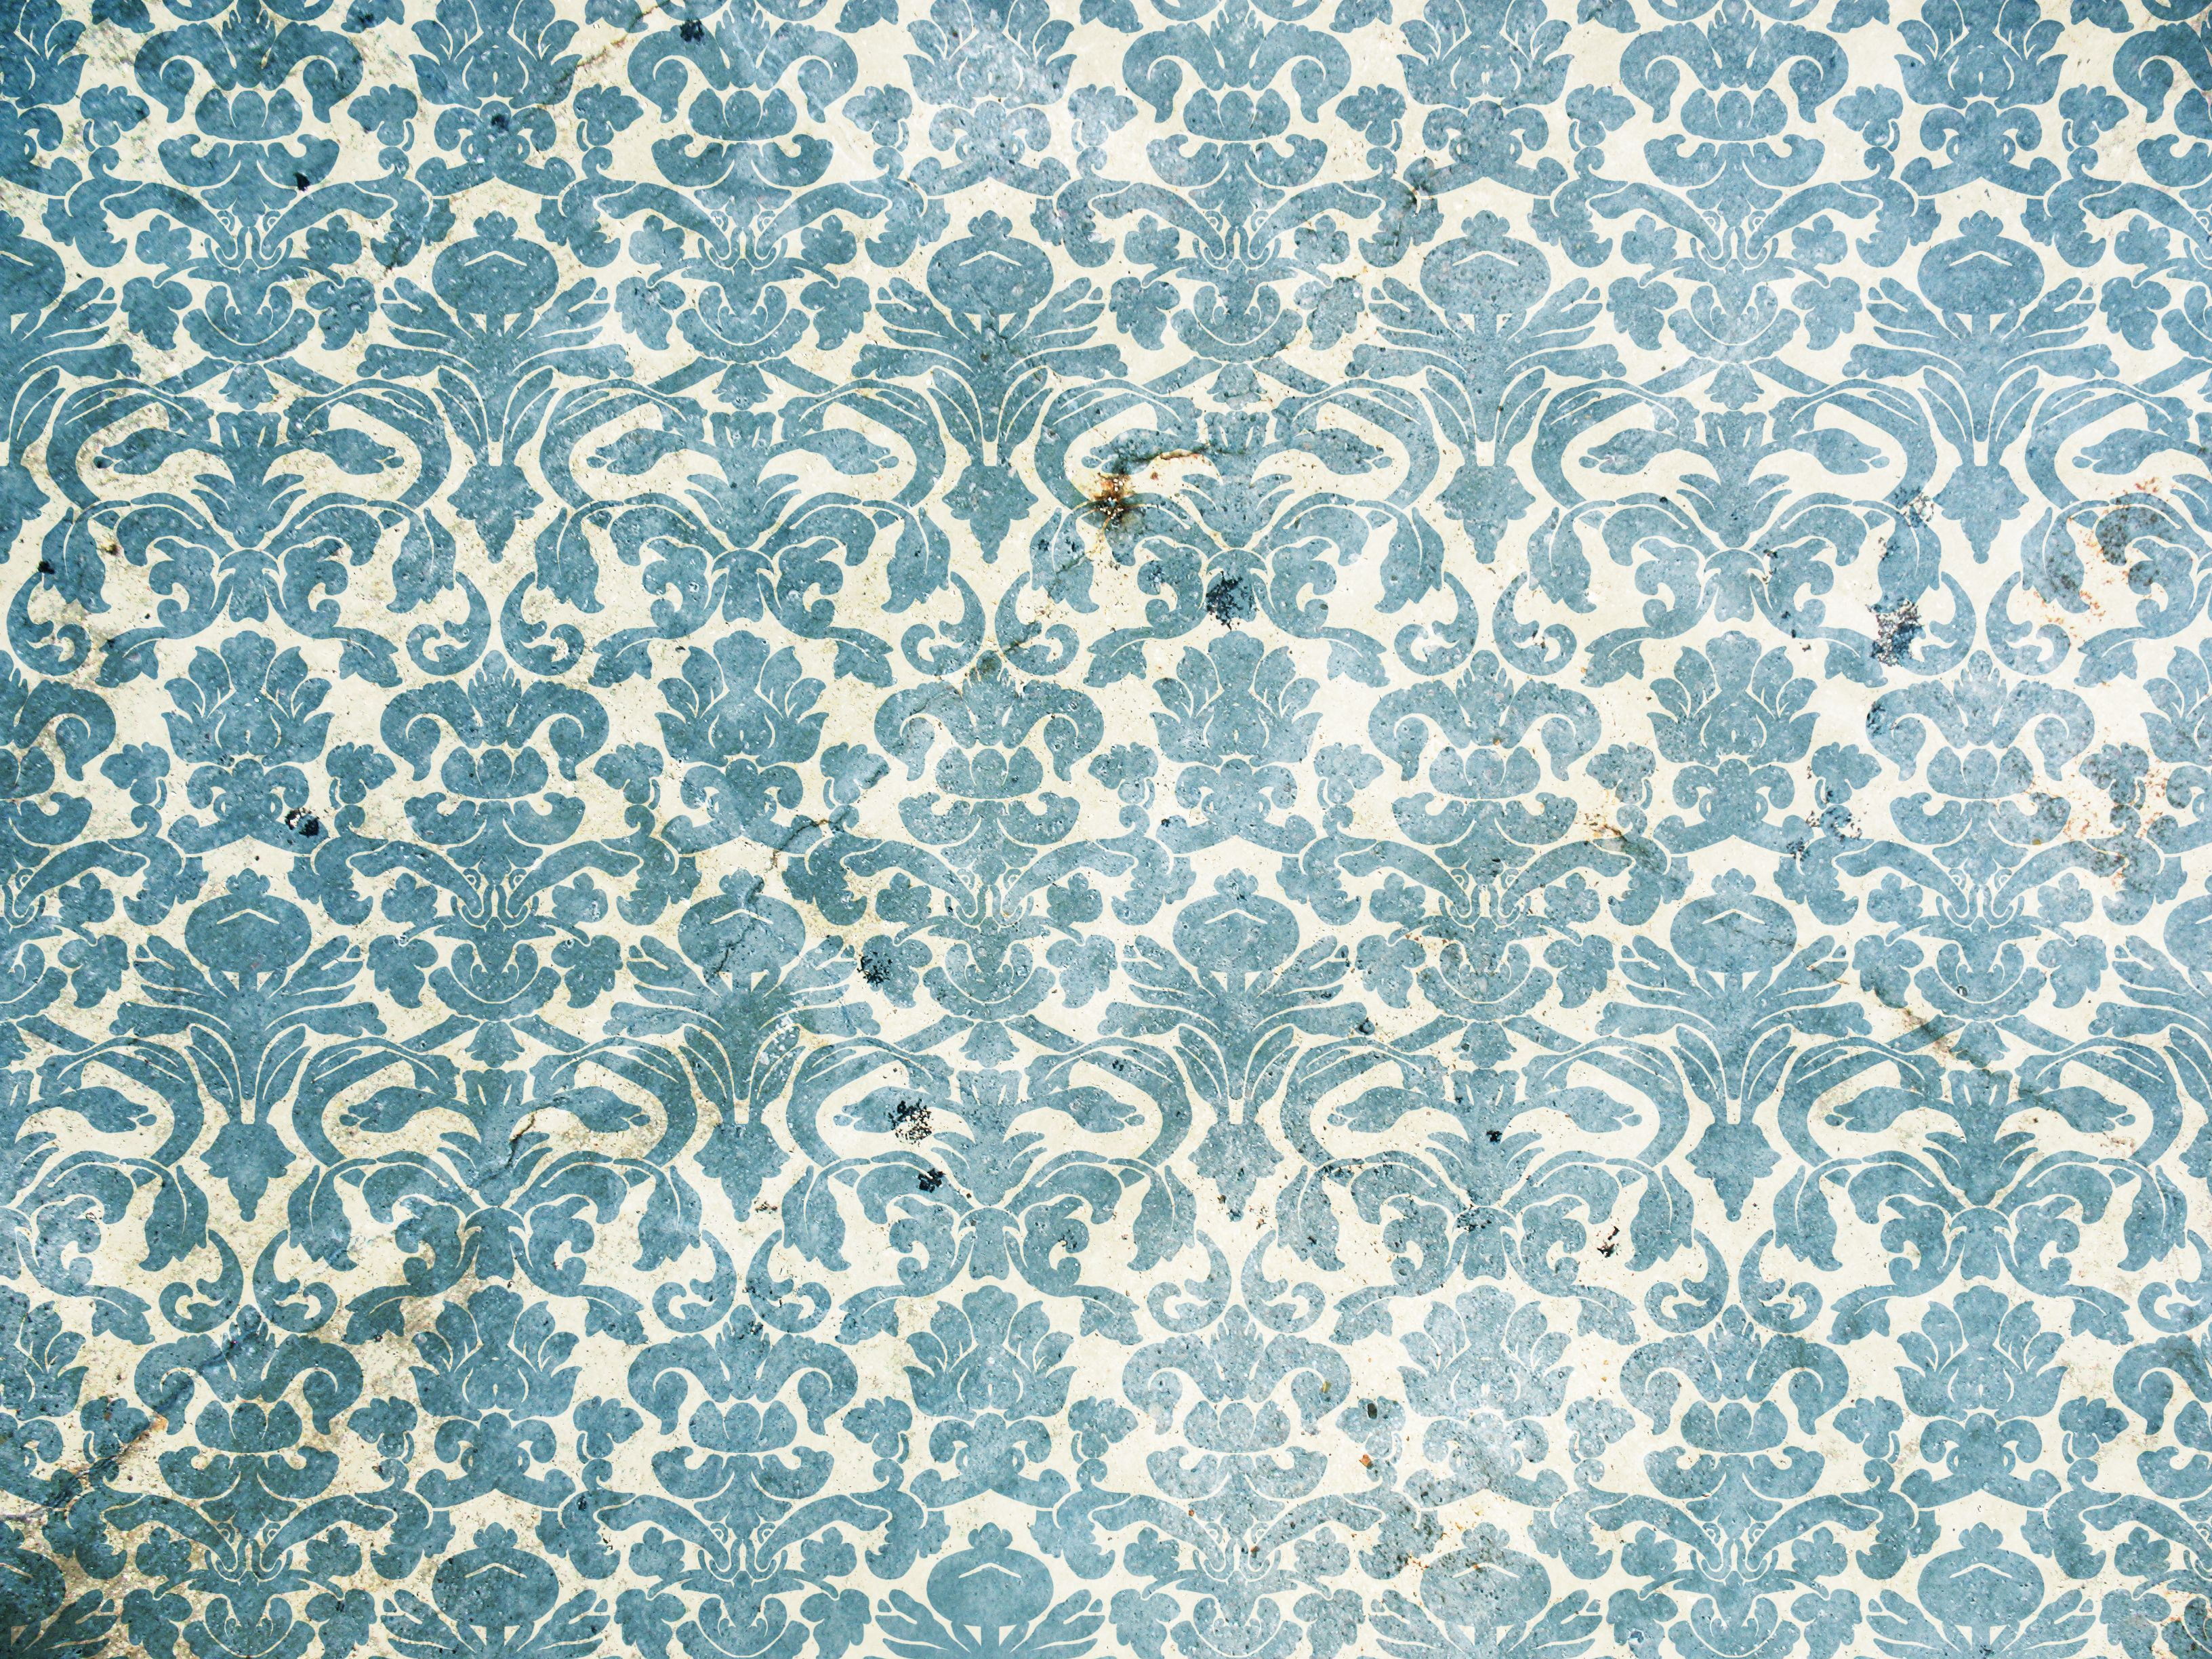 Wallpaper Pattern In Vintage Style Royalty Cliparts HD Wallpaper 3264x2448